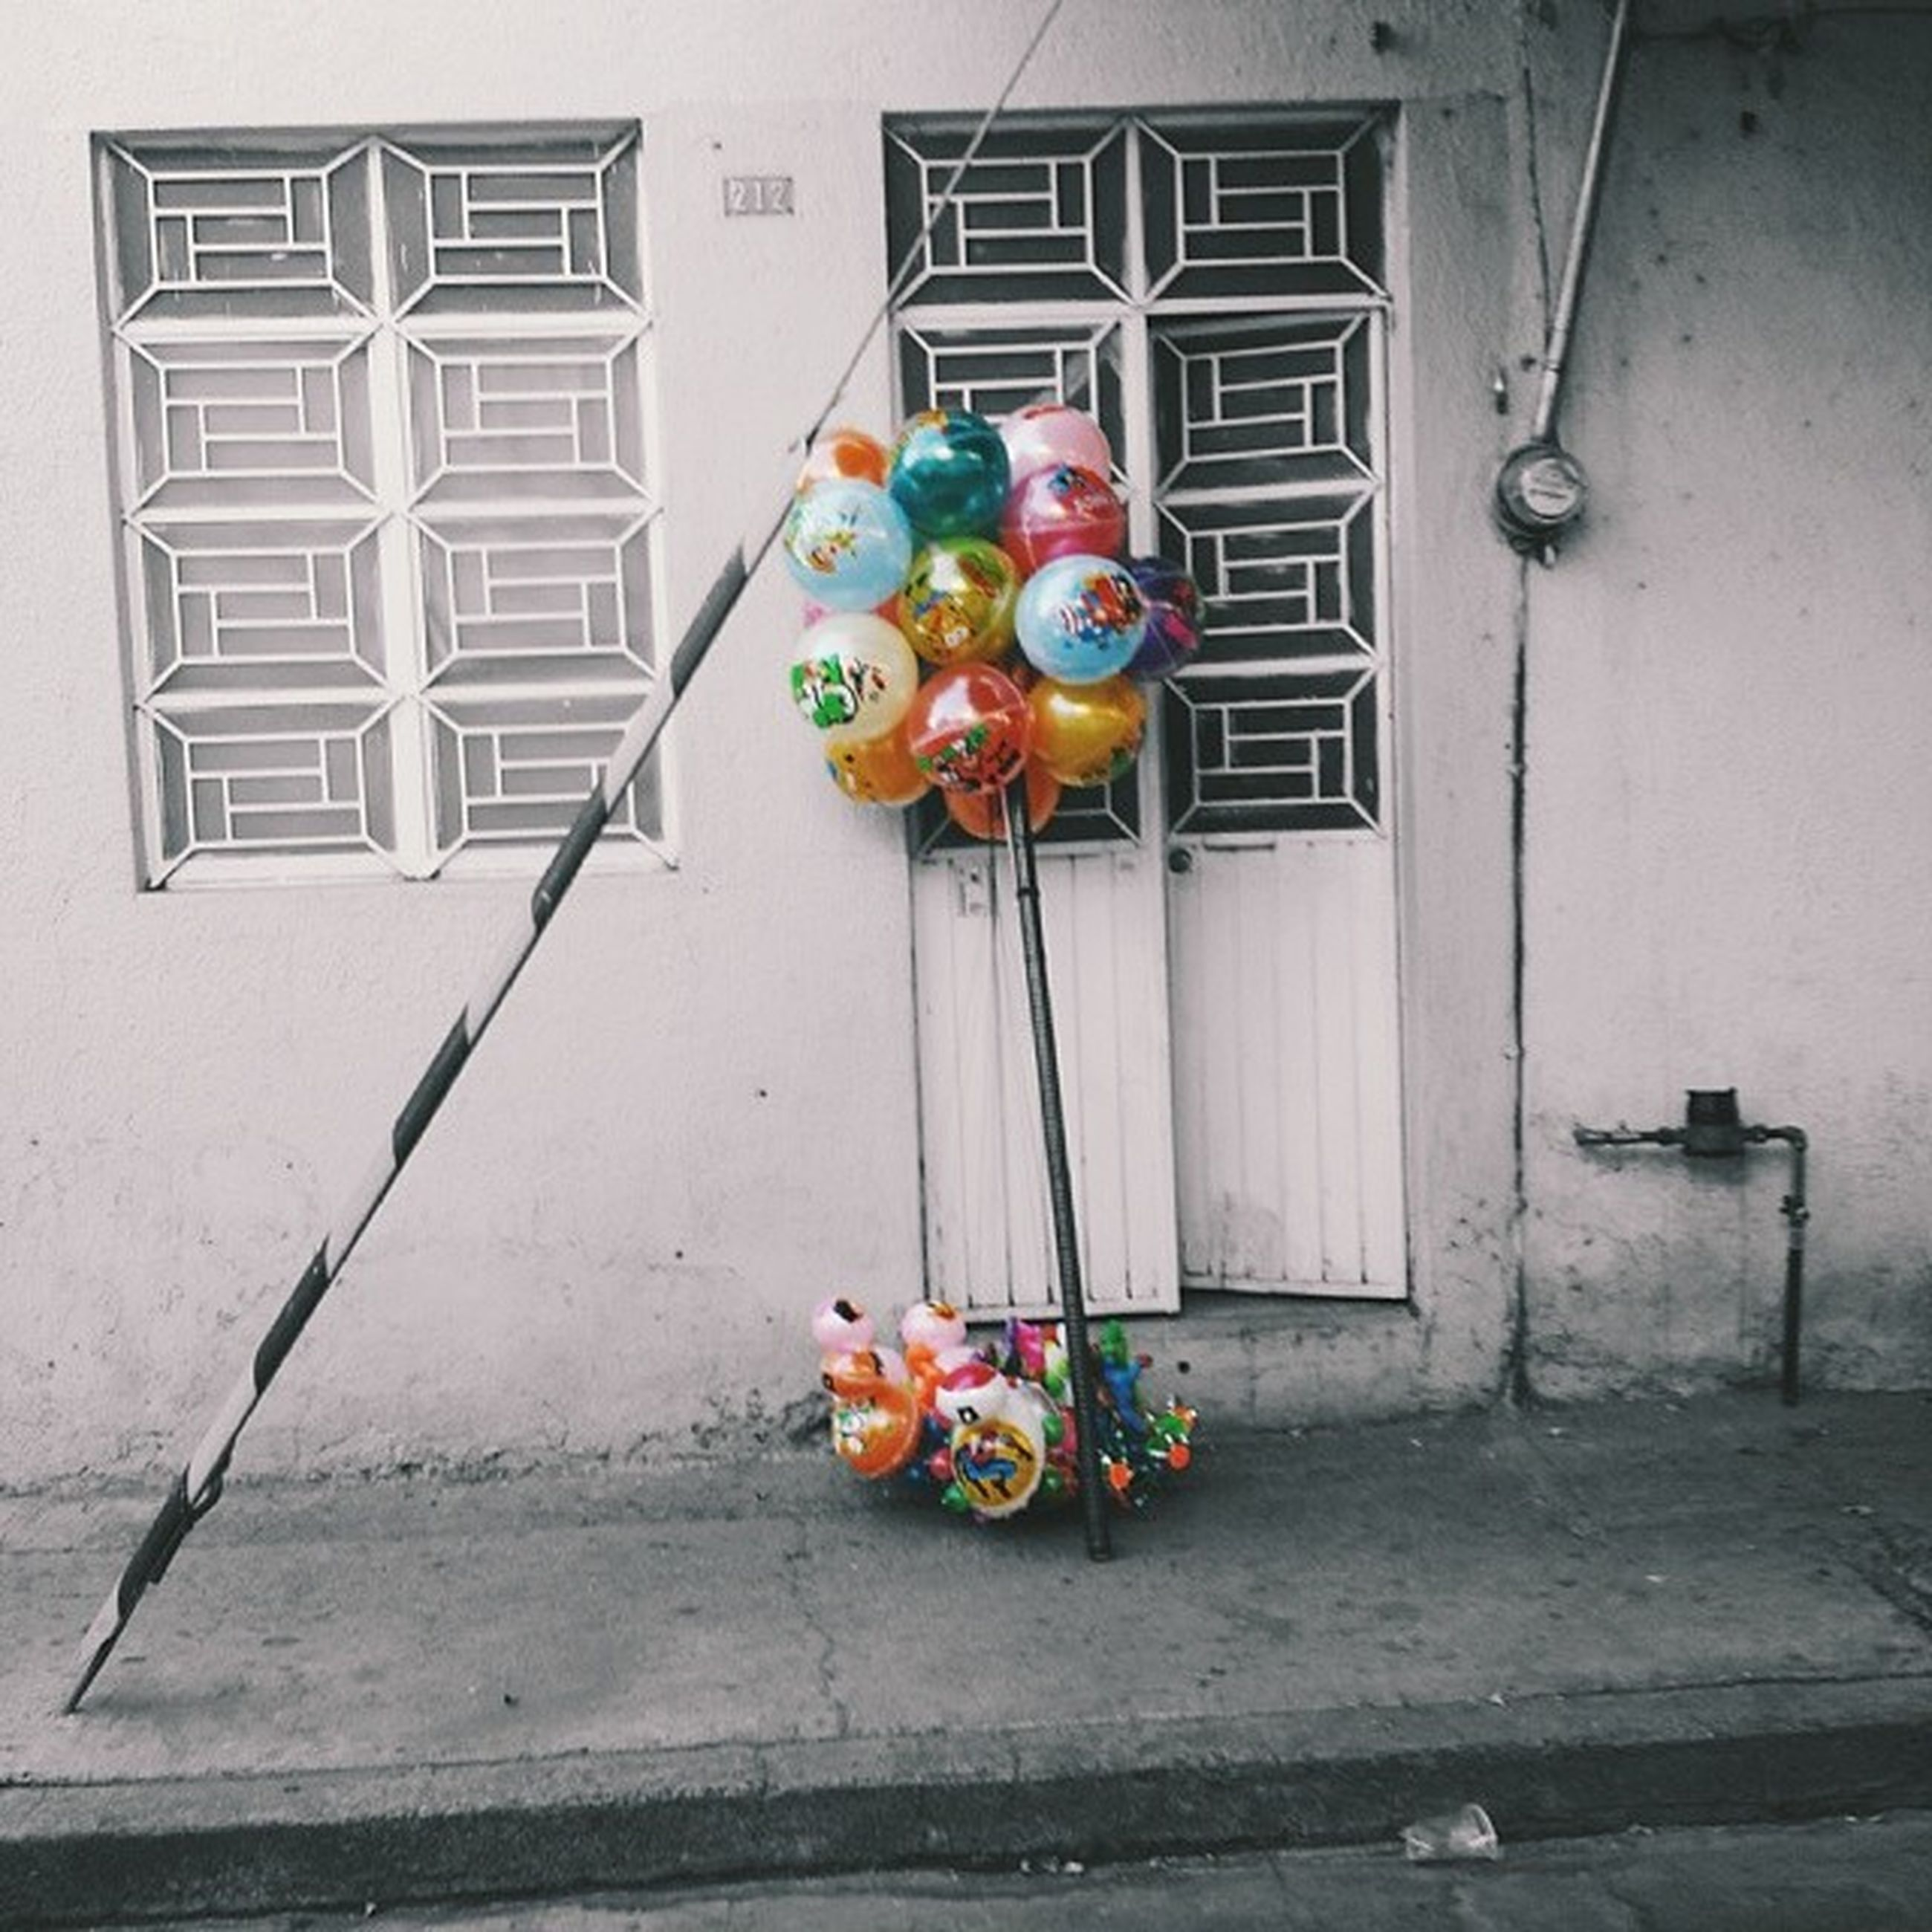 multi colored, building exterior, built structure, architecture, toy, childhood, art and craft, art, colorful, creativity, variation, hanging, day, wall - building feature, house, window, no people, outdoors, animal representation, street